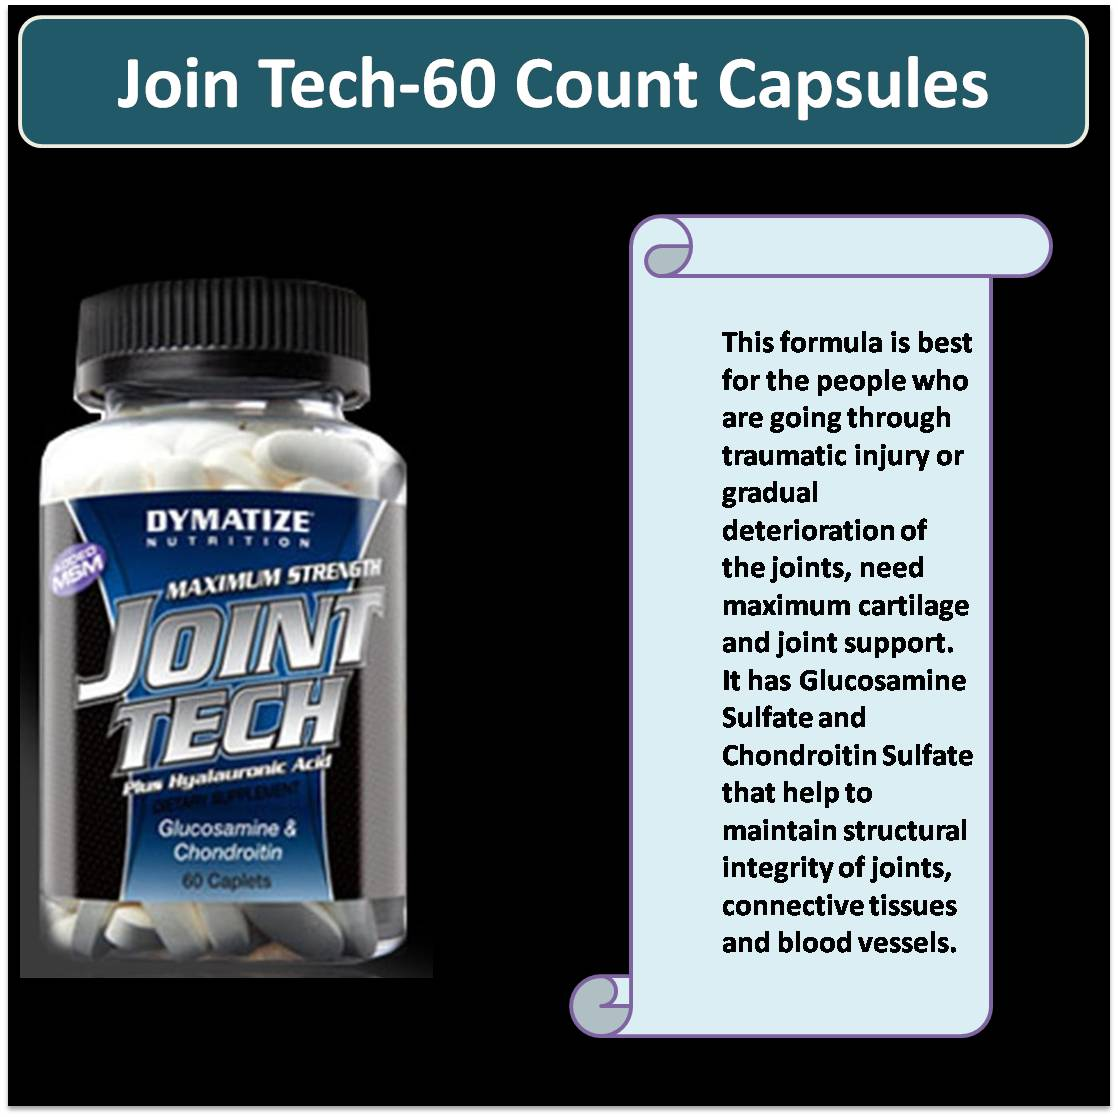 Join Tech-60 Count Capsules